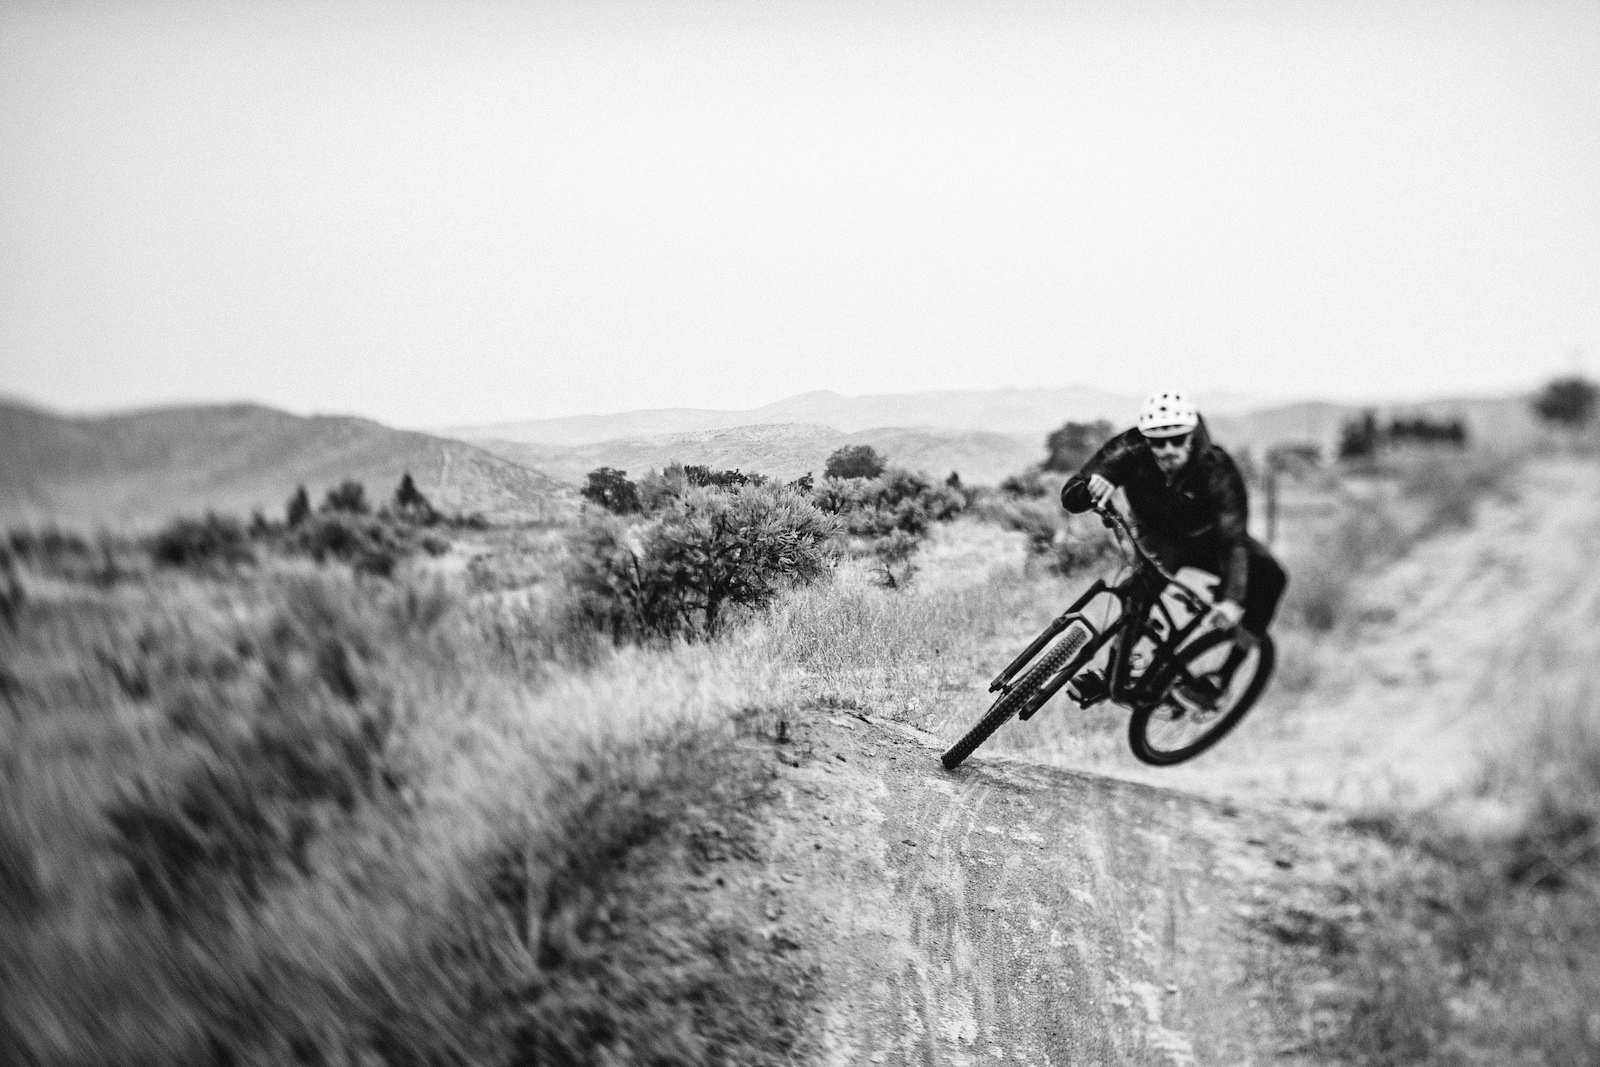 The endless rollers and berms at the Eagle Bike Park make this spot a hub for the local mountian bike community in Boise and surrounding areas.